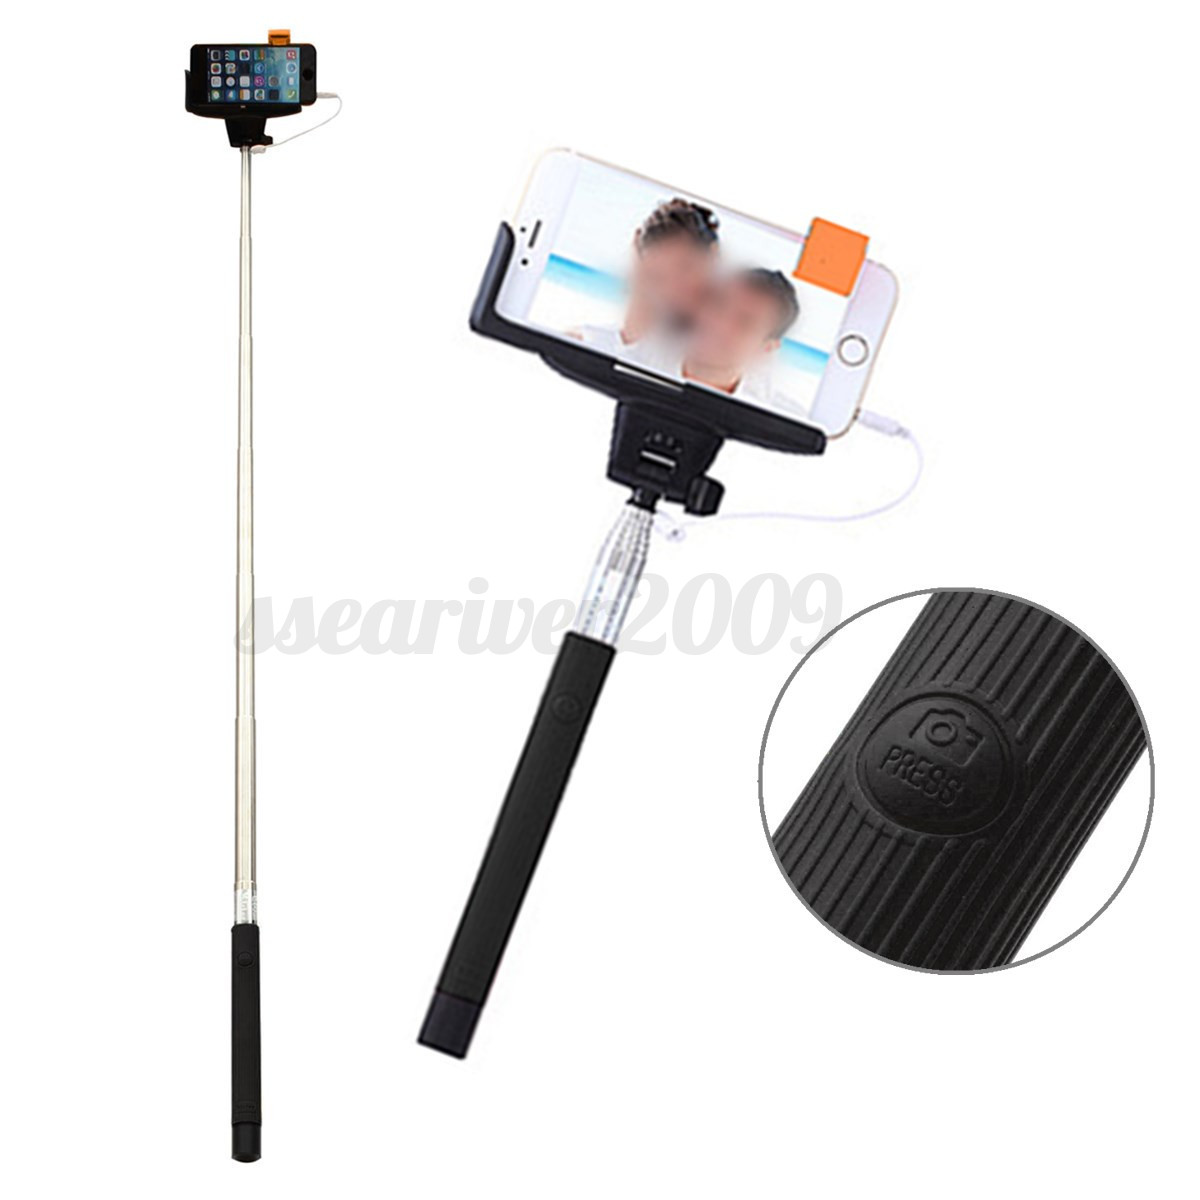 remote extensible monopod party shot selfie stick pole for iphone samsung huawei ebay. Black Bedroom Furniture Sets. Home Design Ideas